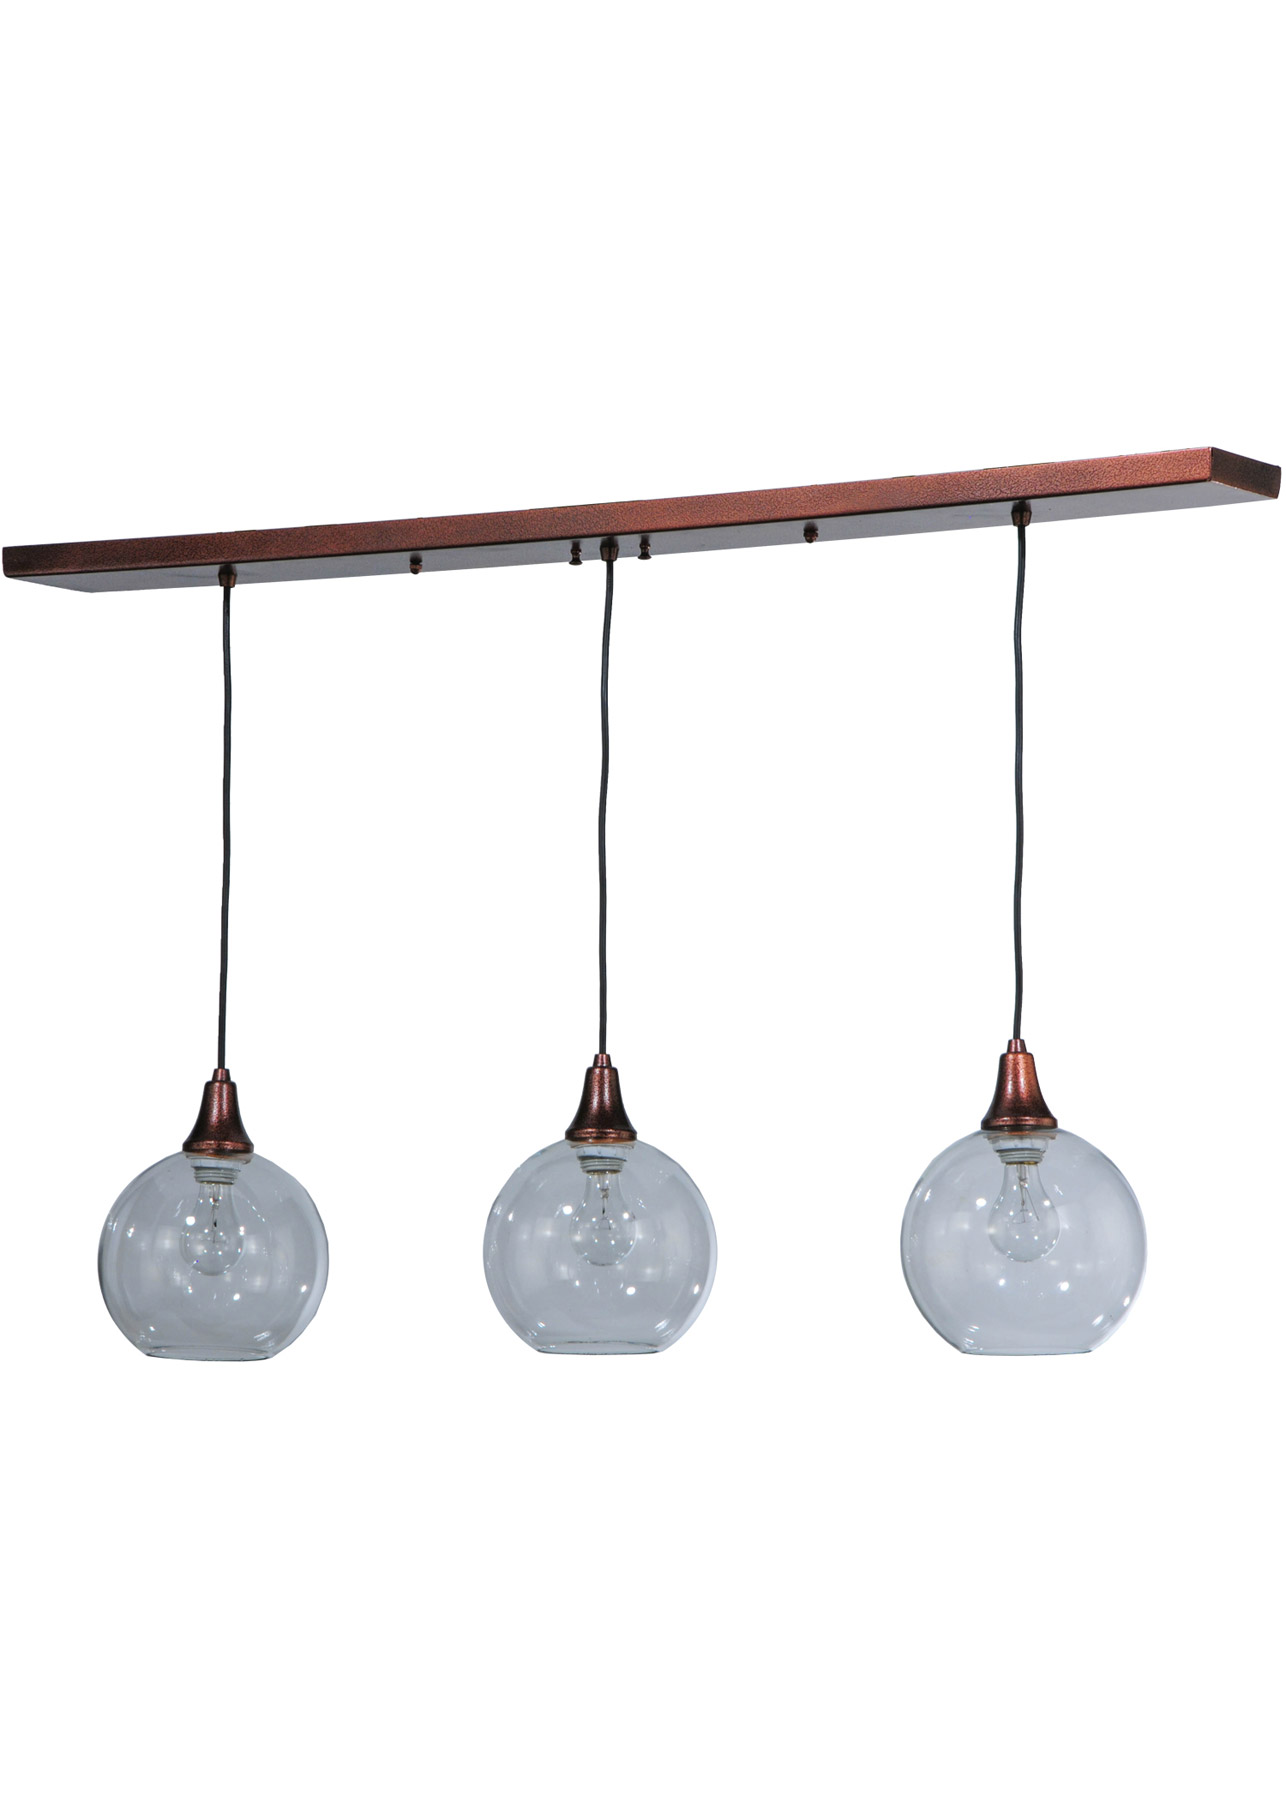 Meyda 142455 Bolla Linear 3 Light Multi Pendant Fixture